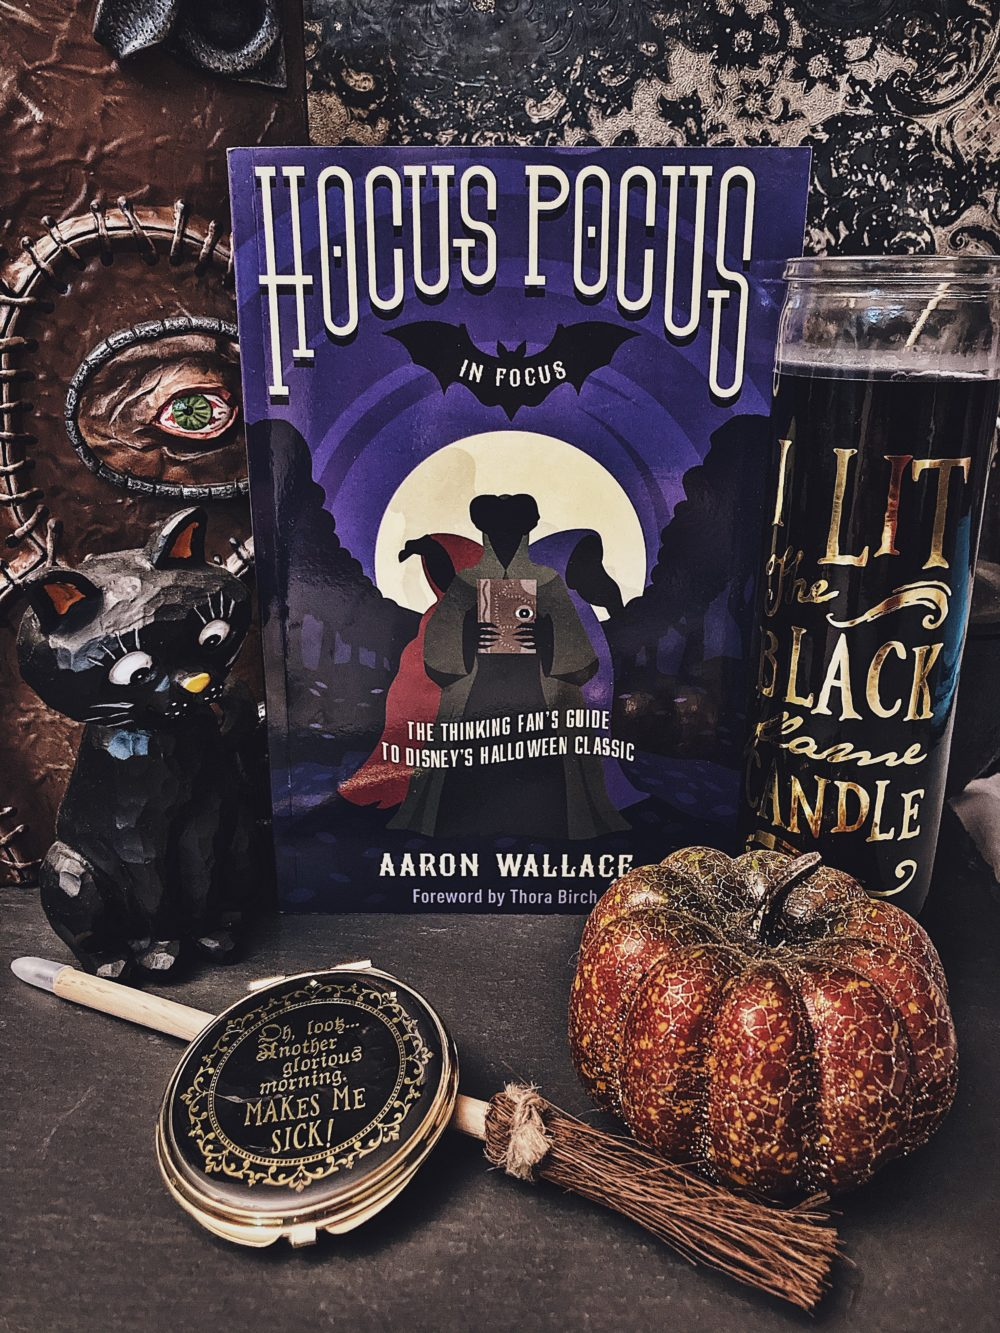 Book review of Hocus Pocus in Focus by Aaron Wallace